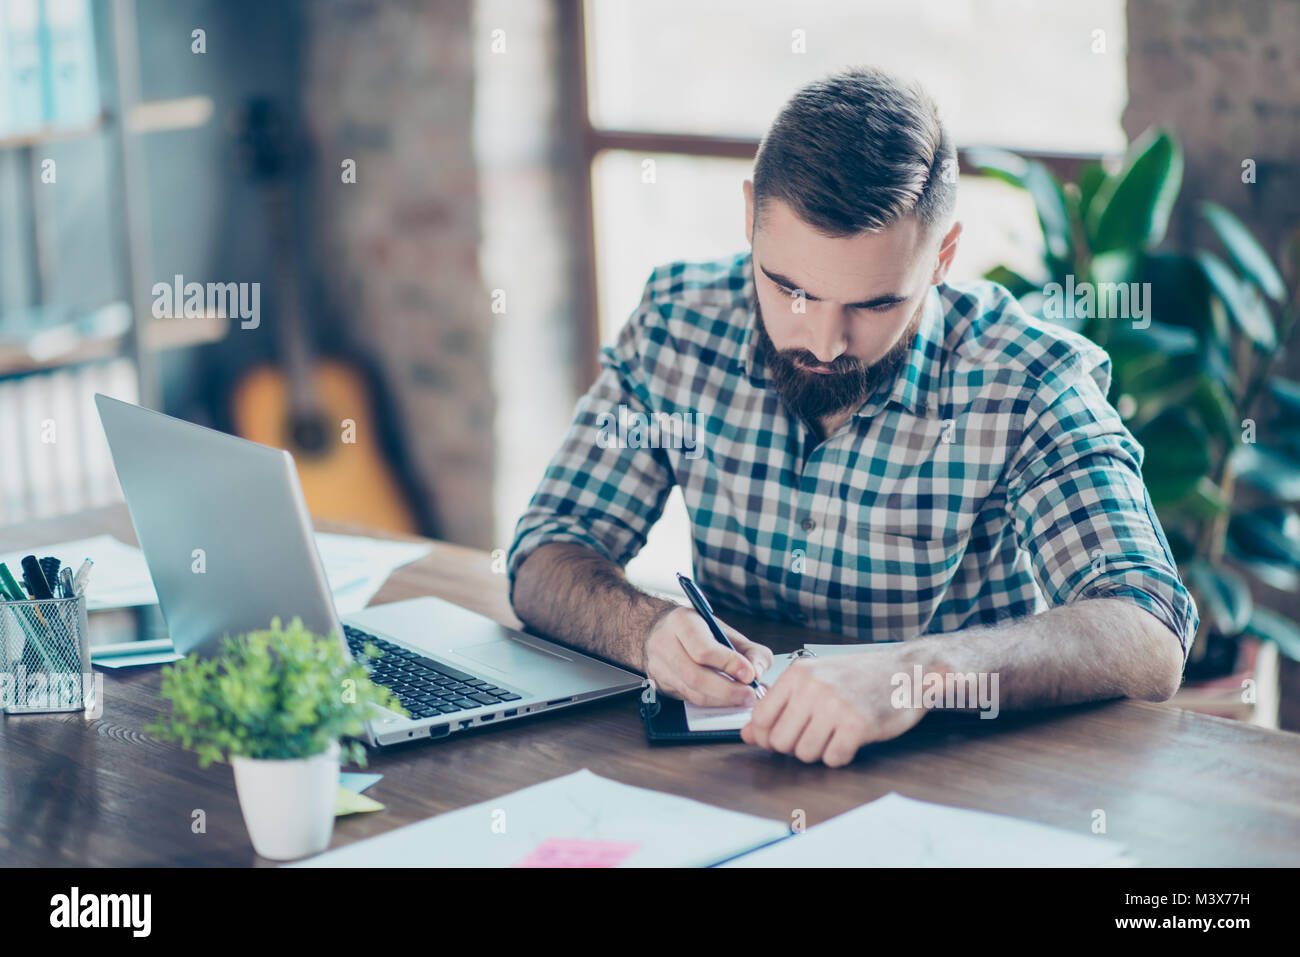 Attentive smart clever intelligent male student wearing checkered shirt is doing homework at home in front of modern - Stock Image